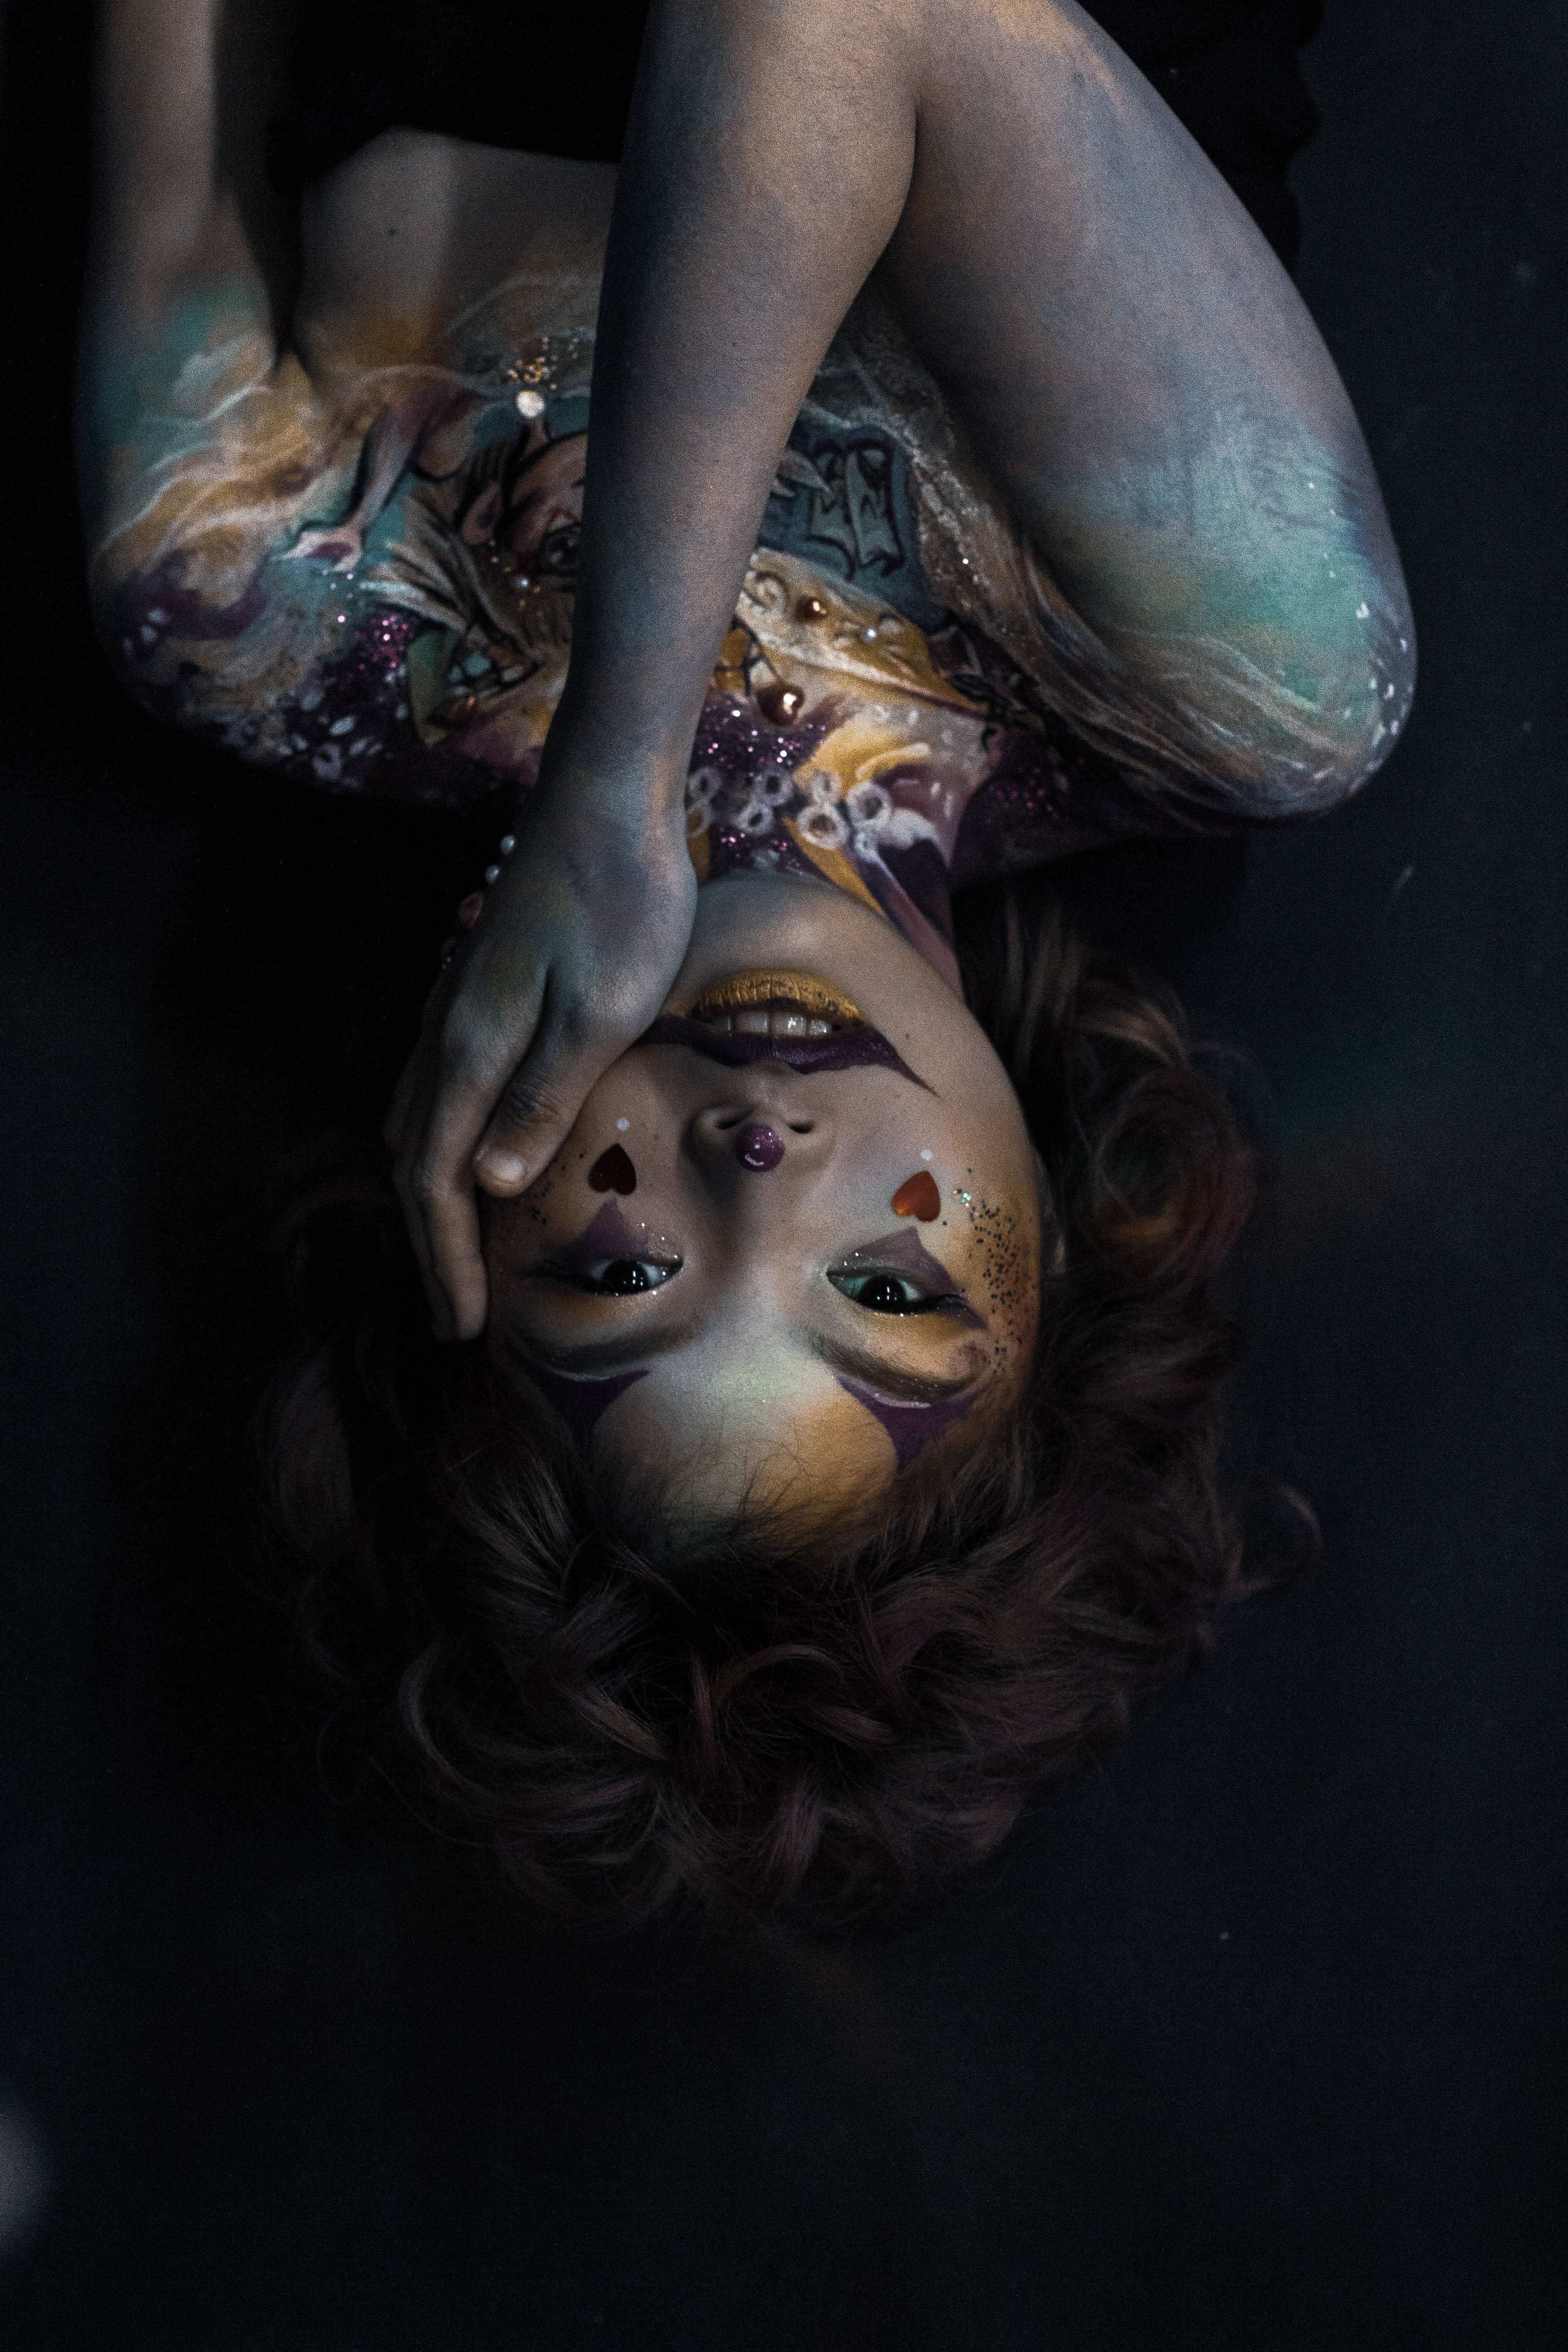 photo of woman with body paint